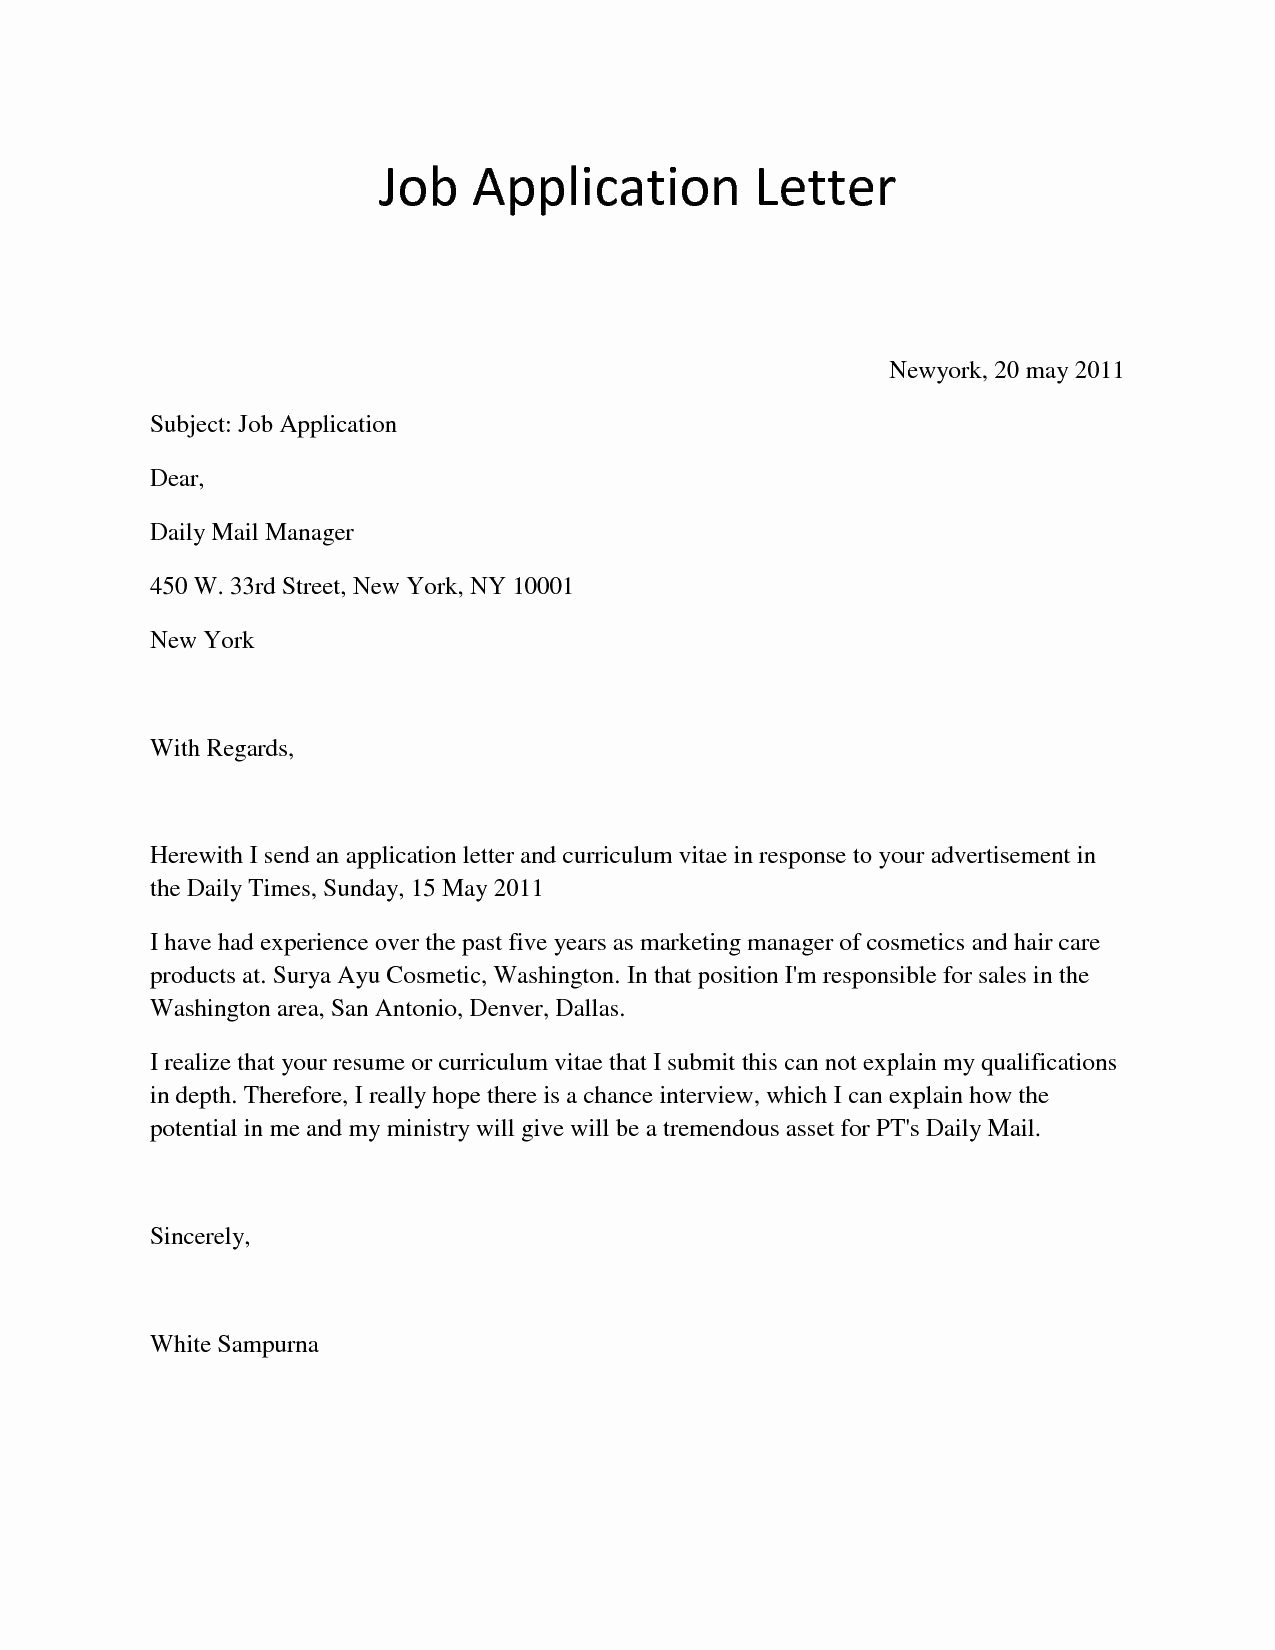 Application Letter for Job Inspirational Cover Letter Template Ngo Job Application